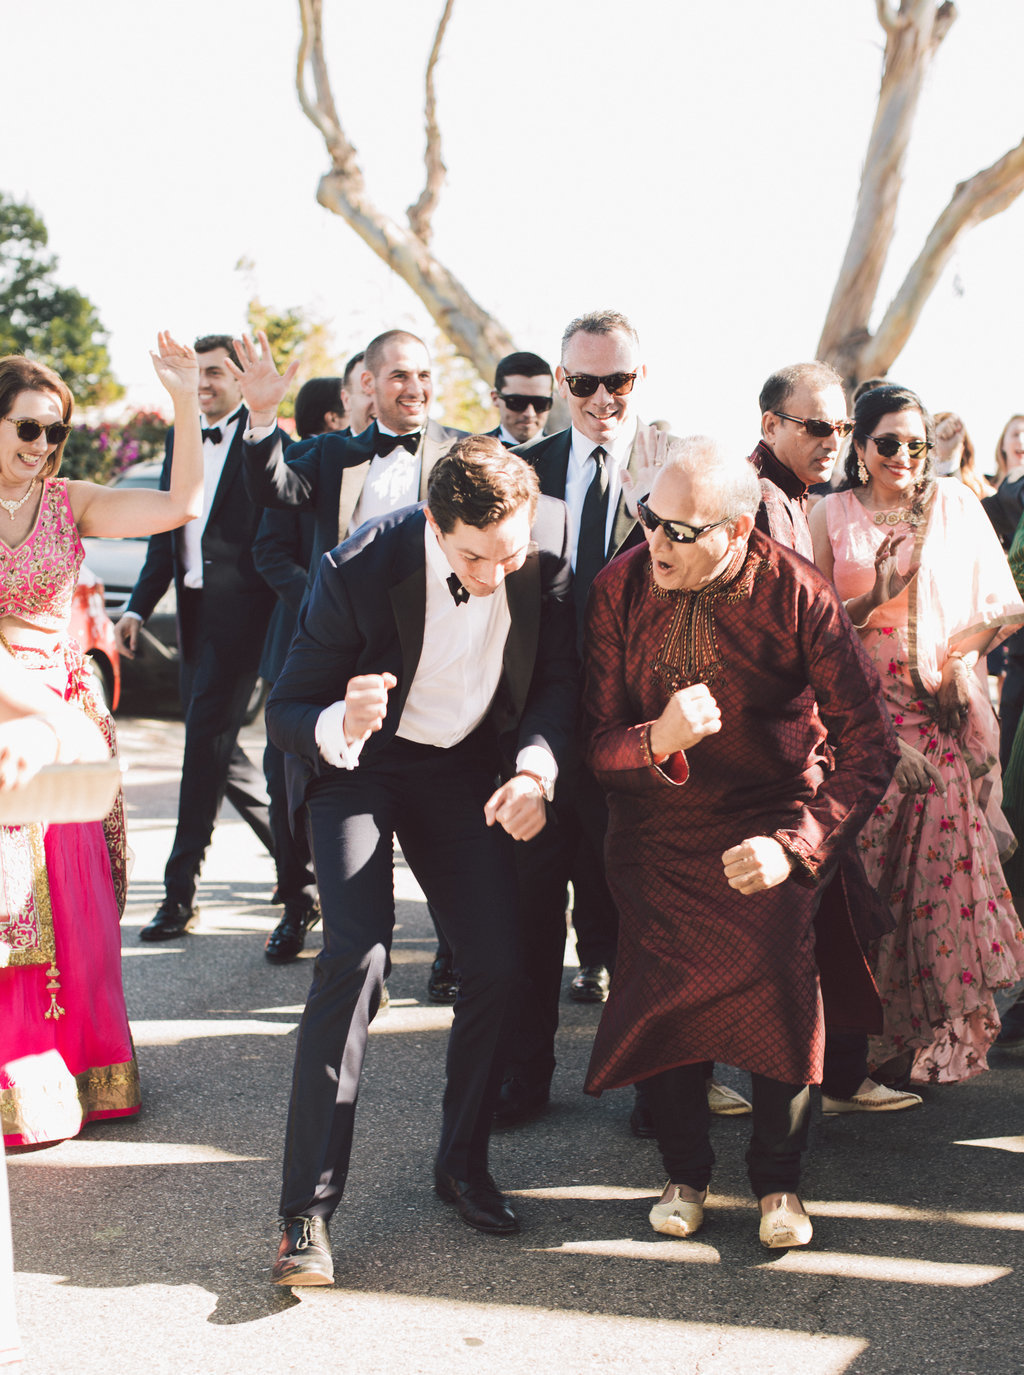 Bharat parade at Indian and Christian blended tradition wedding at Butterfly Lane Estate in Montecito